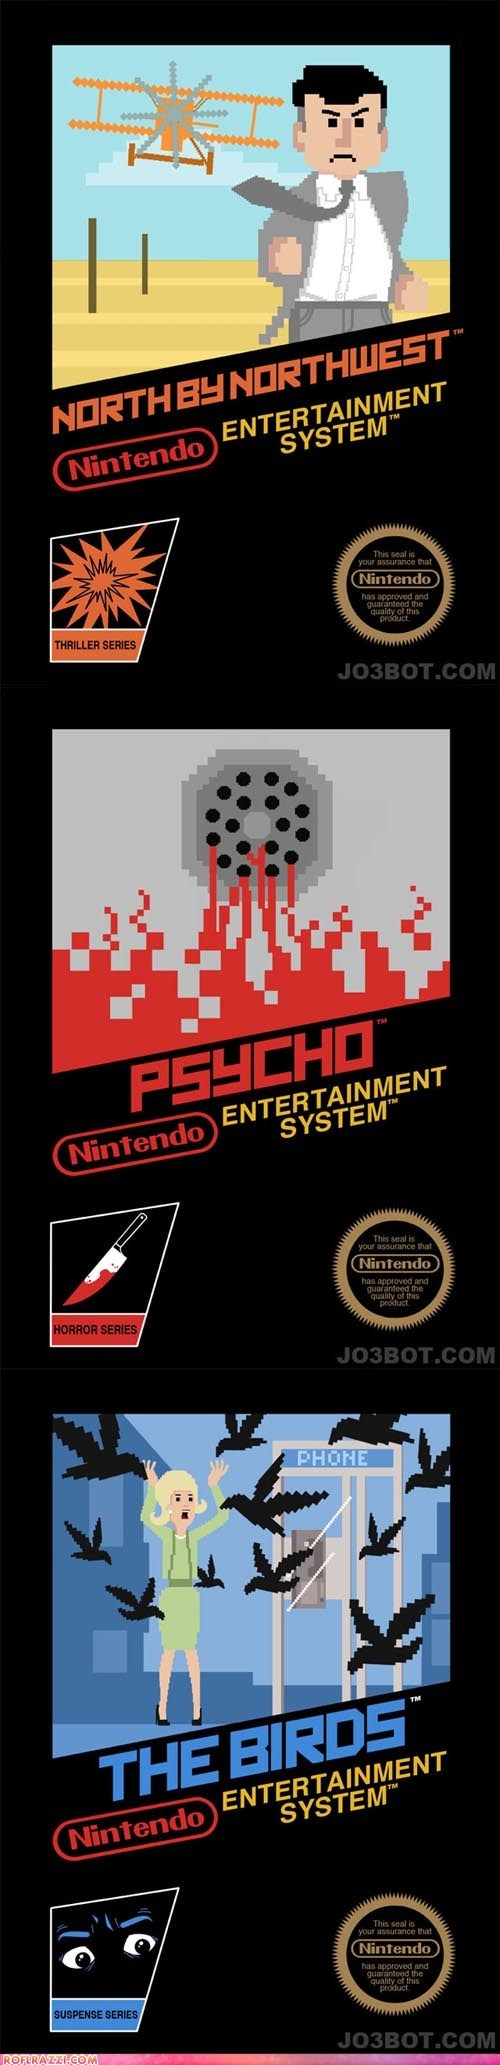 alfred hitchcock art awesome cool funny games Movie nintendo - 6062005760